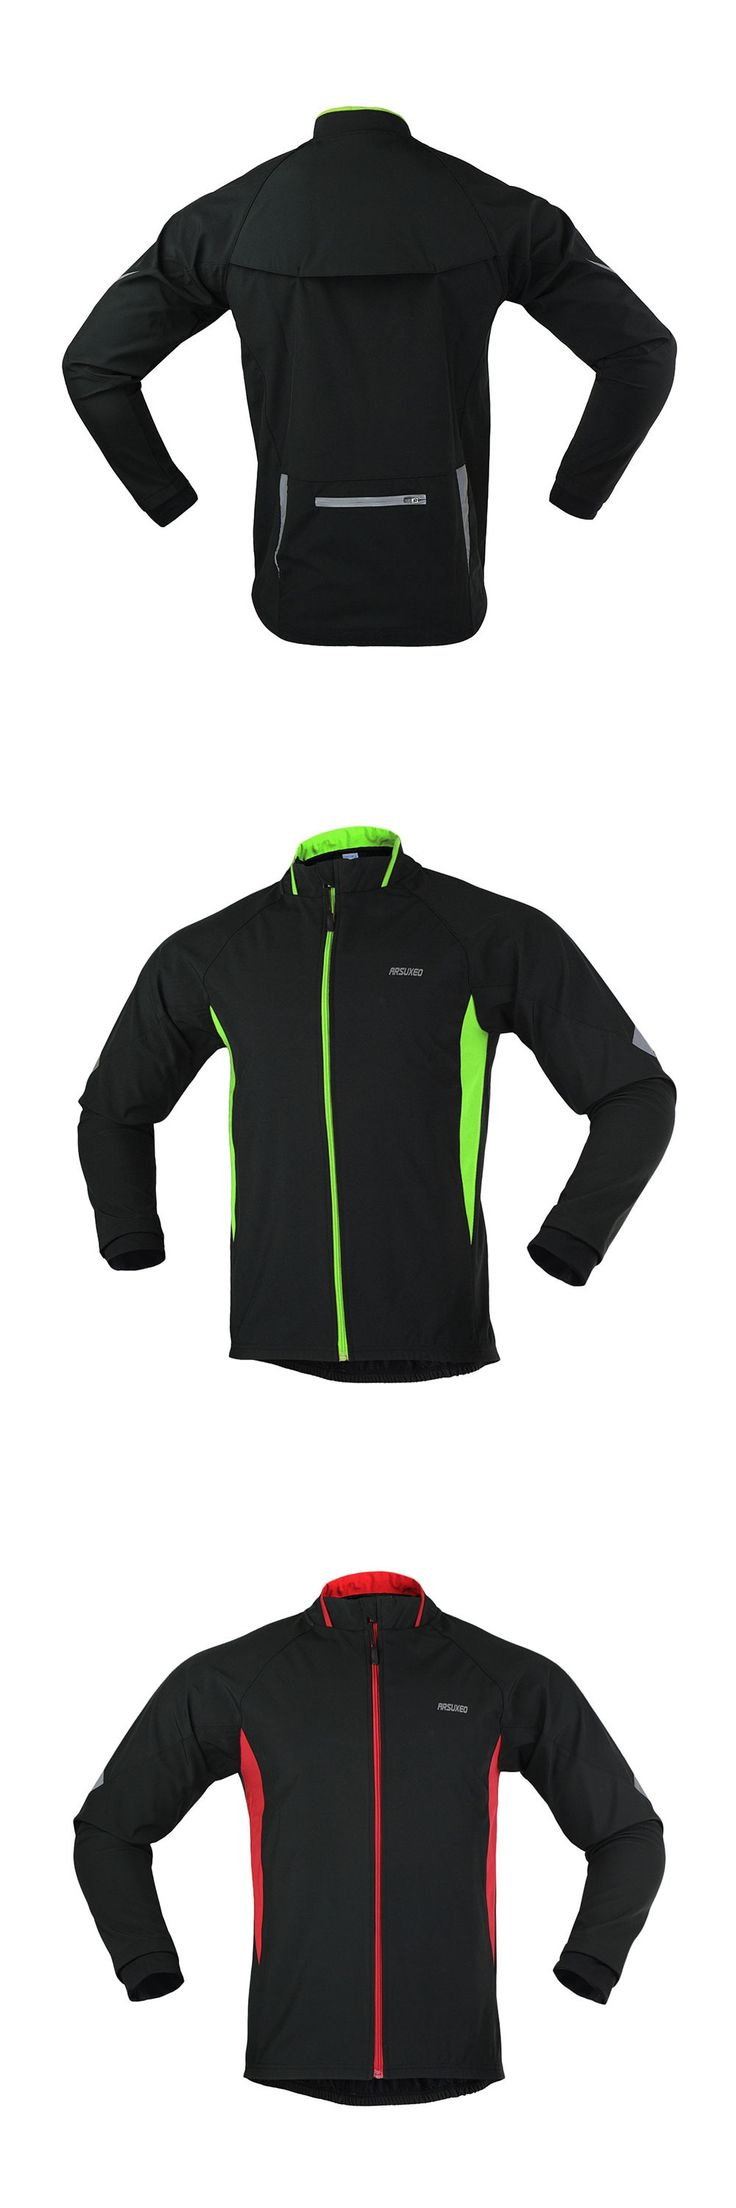 Ropa Ciclismo Winter Cycling Clothing And Wind Waterproof Wear-resistant Thermal Jackets To Ride President Sleeve Jacket Jersey